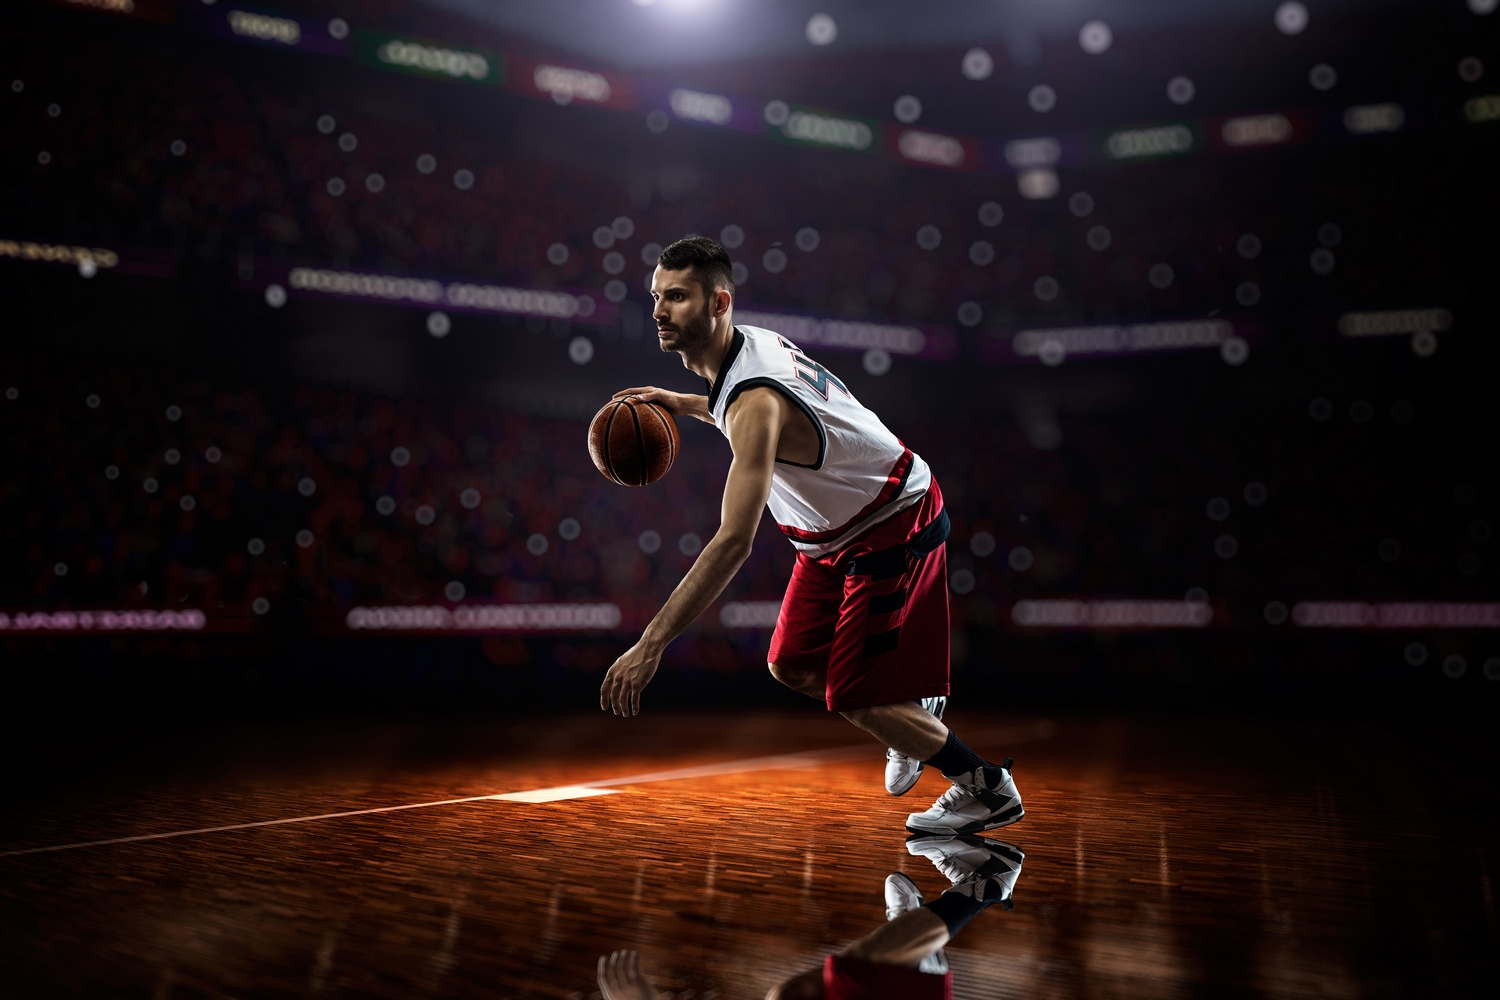 2017_Basketball_player_with_a_ball_playing_on_the_field_119273_